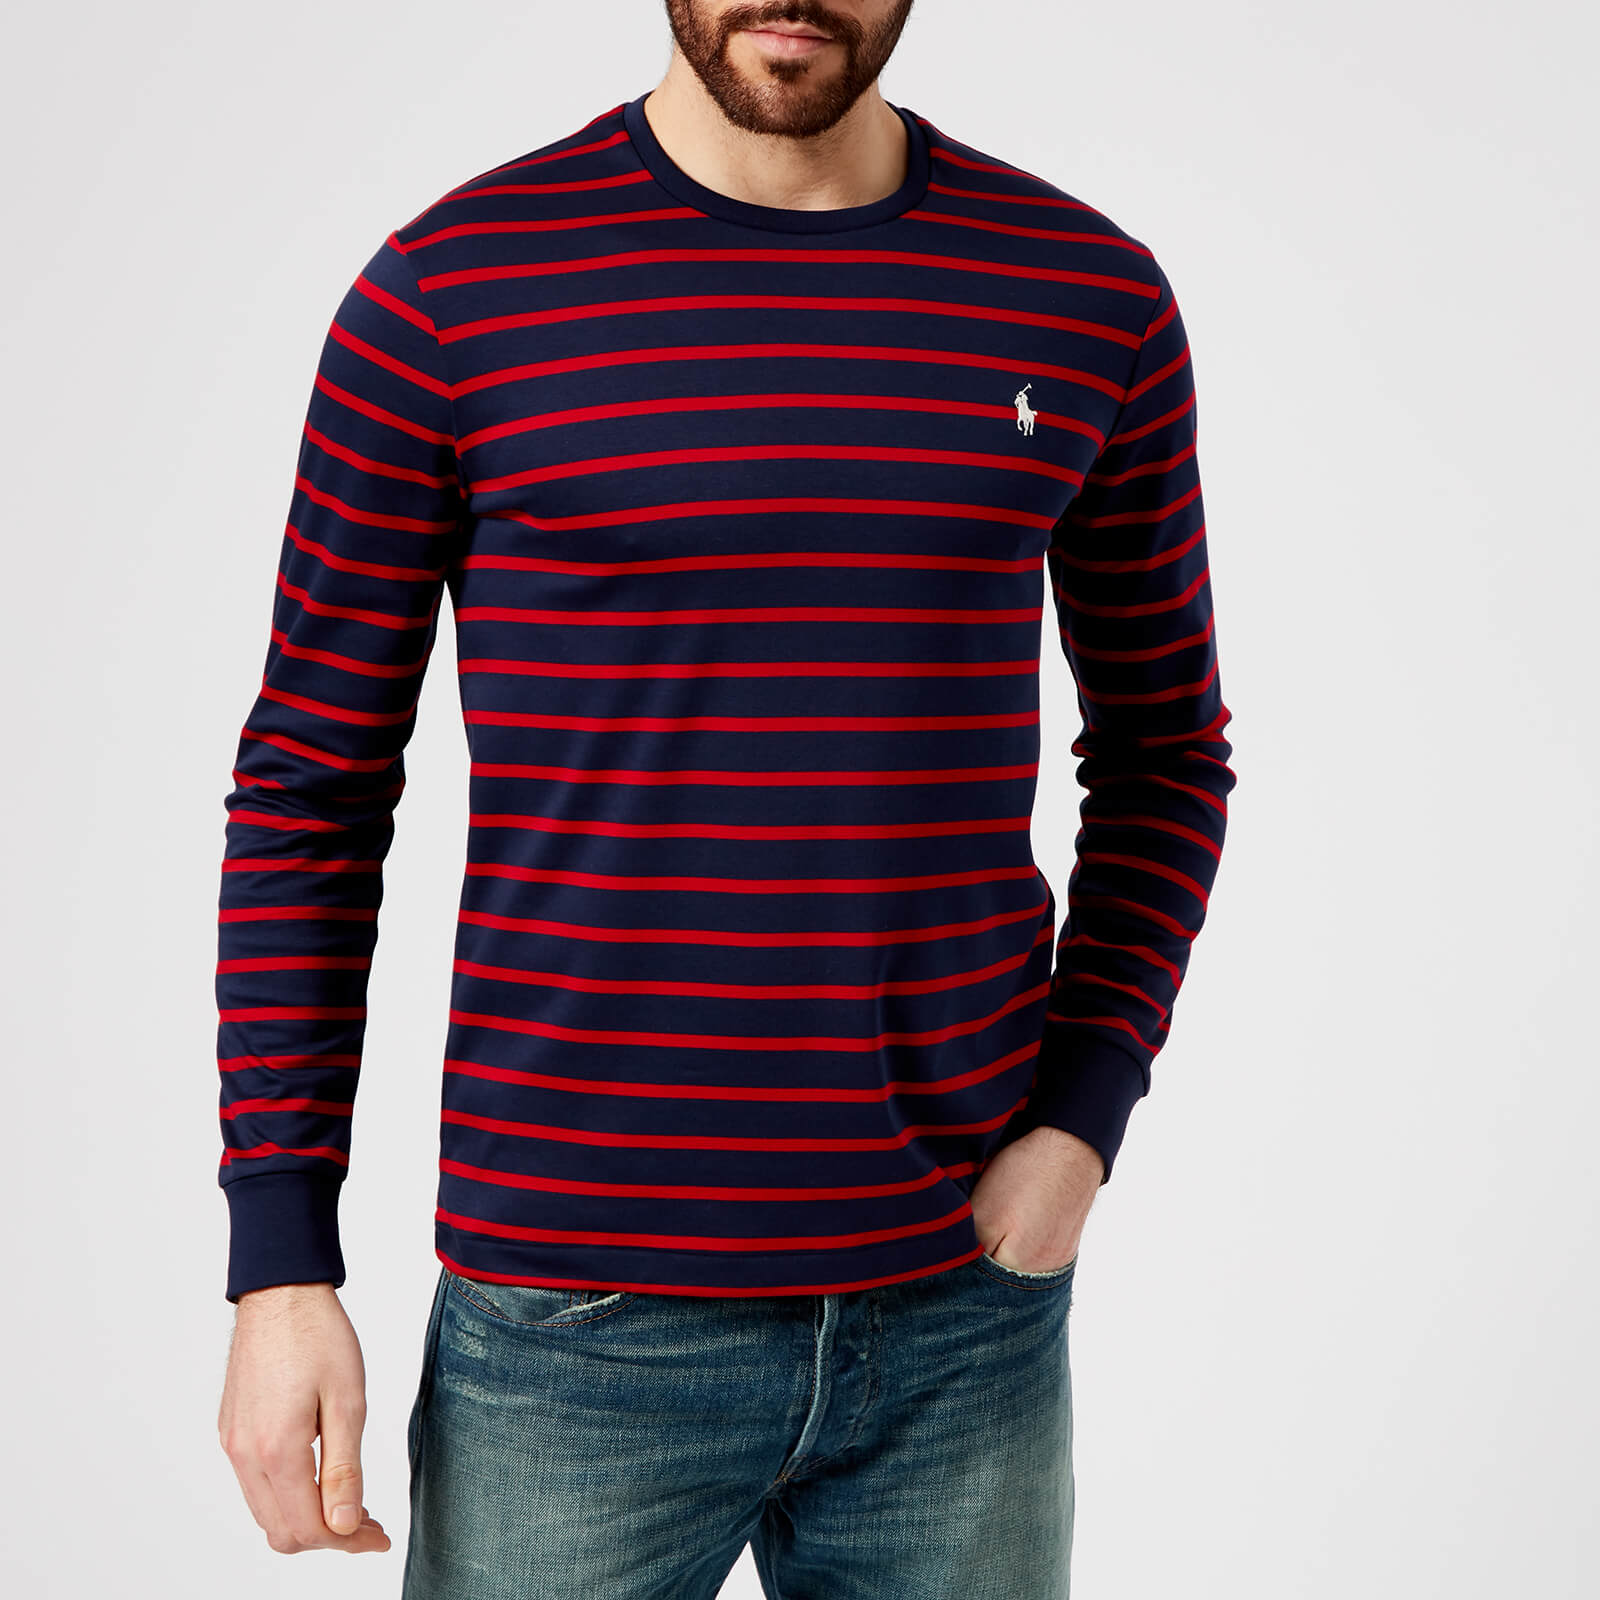 2002ef346de Polo Ralph Lauren Men s Long Sleeve Stripe Top - French Navy Ralph Red -  Free UK Delivery over £50